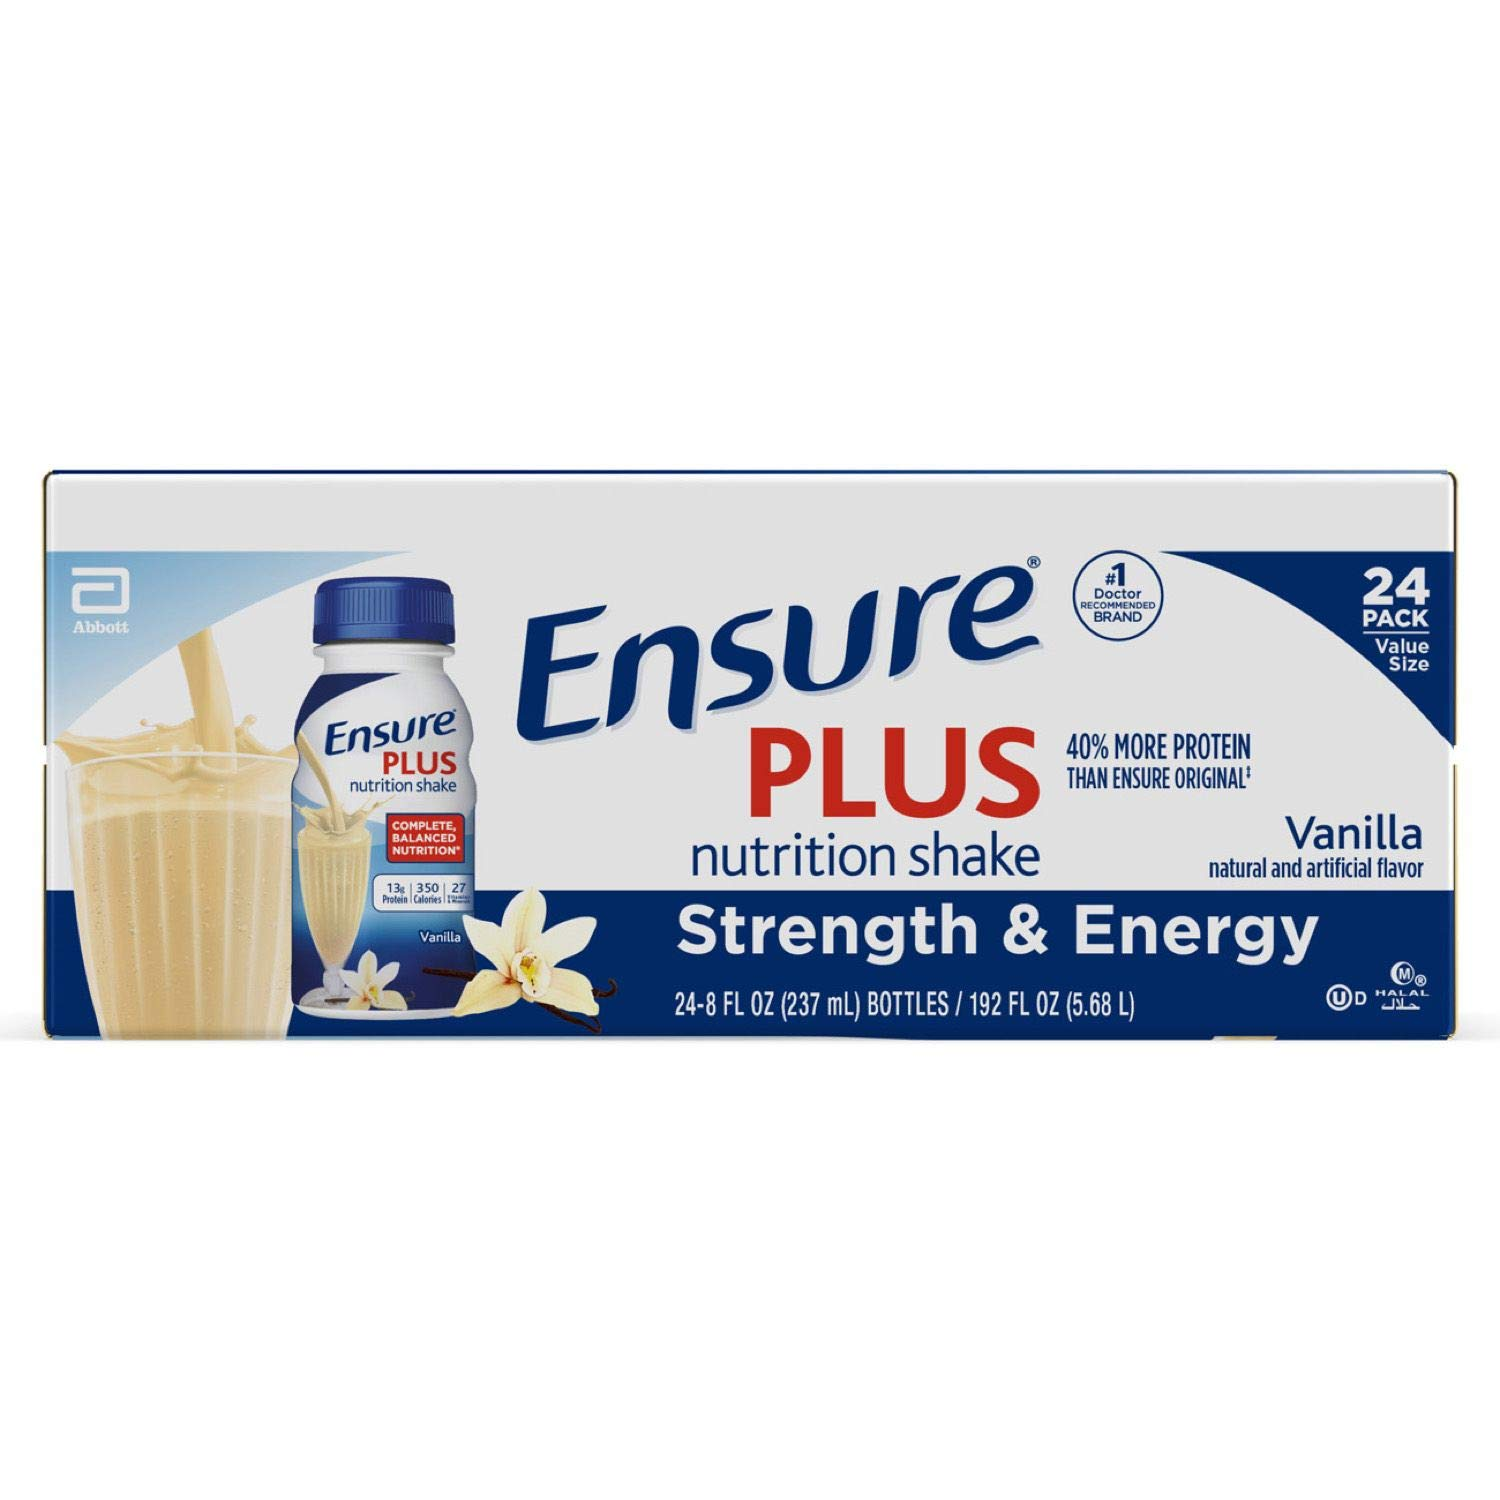 Ensure Plus Therapeutic Nutrition, Vanilla - 8 Oz Containers- Case of 24 by Abbott